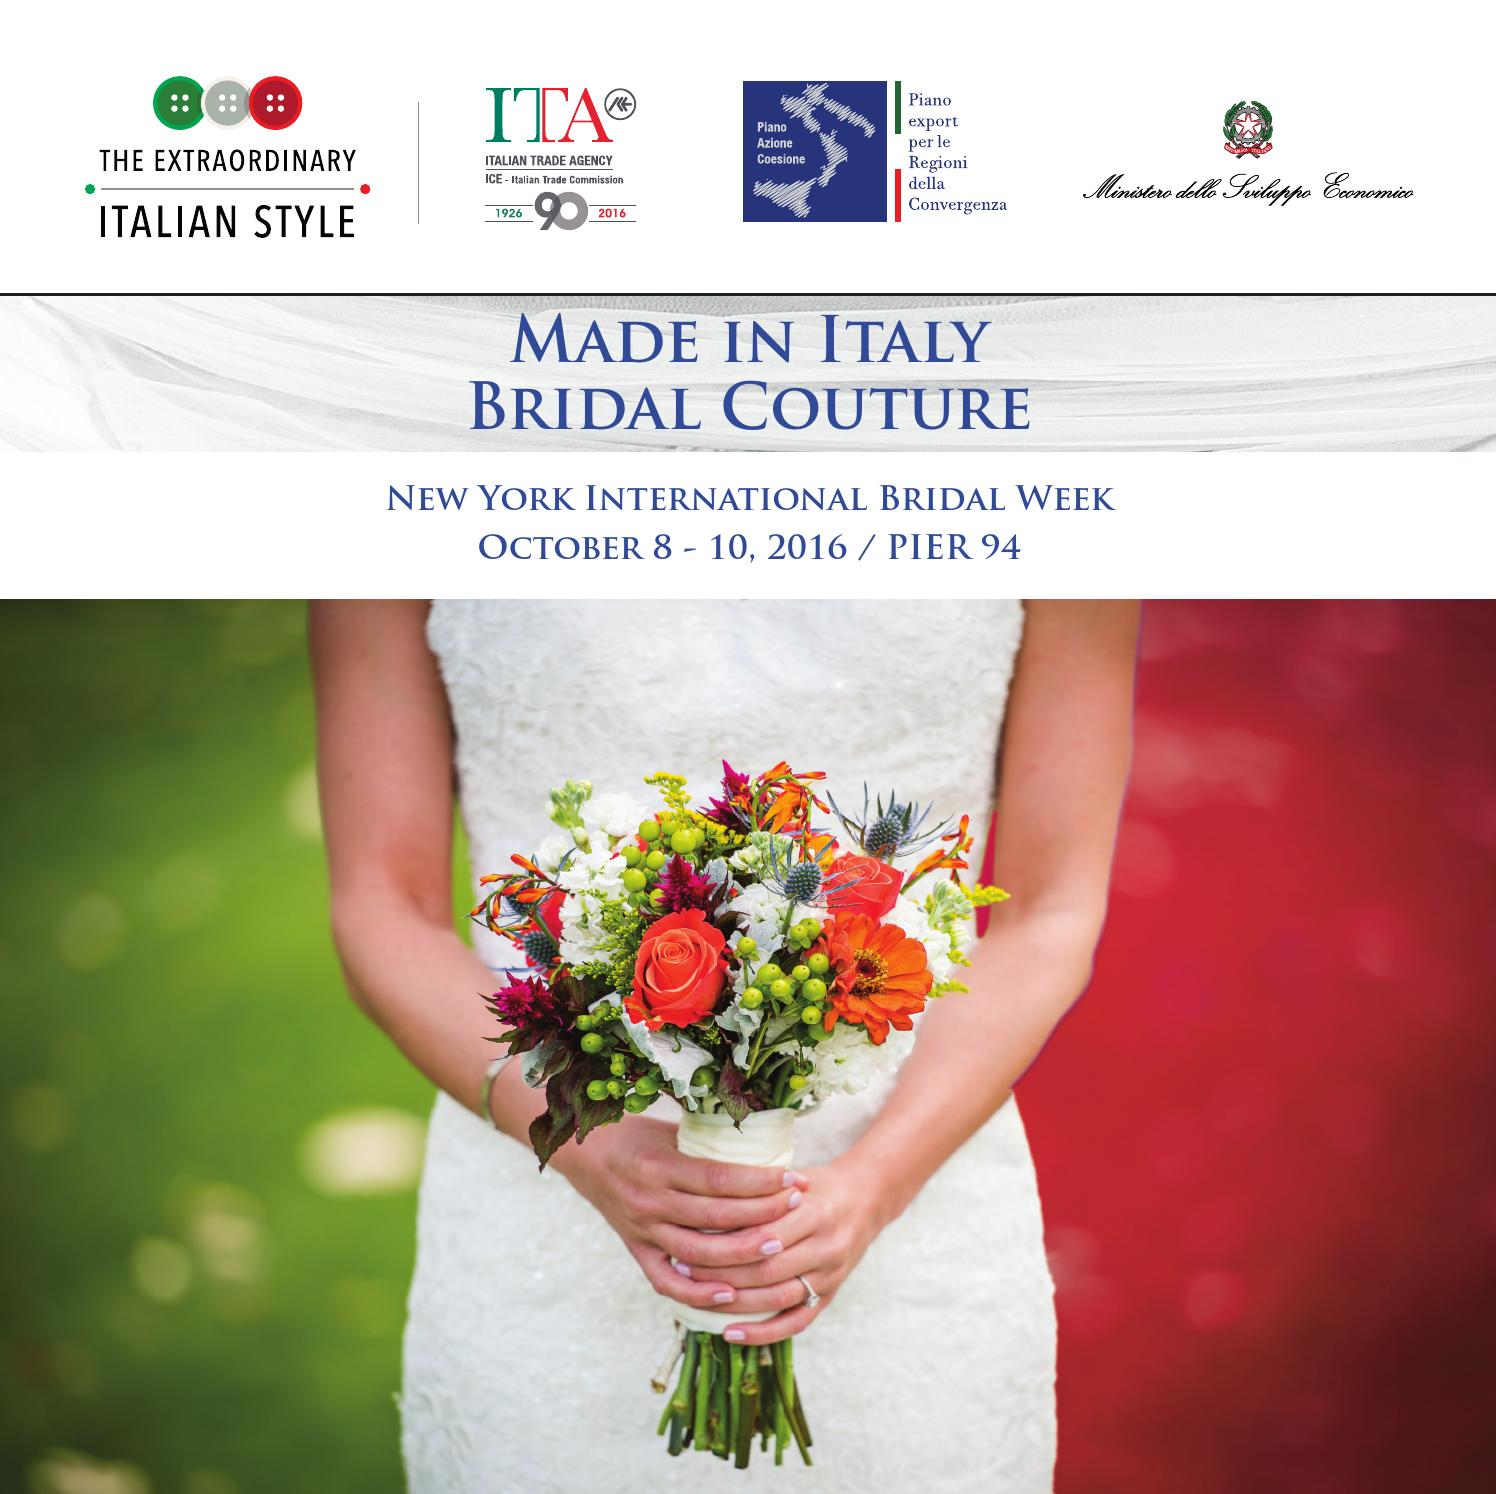 Bouquet Sposa Economico Roma.Italian Trade Commission Bridal 0ct 2016 By Marc Littell Issuu